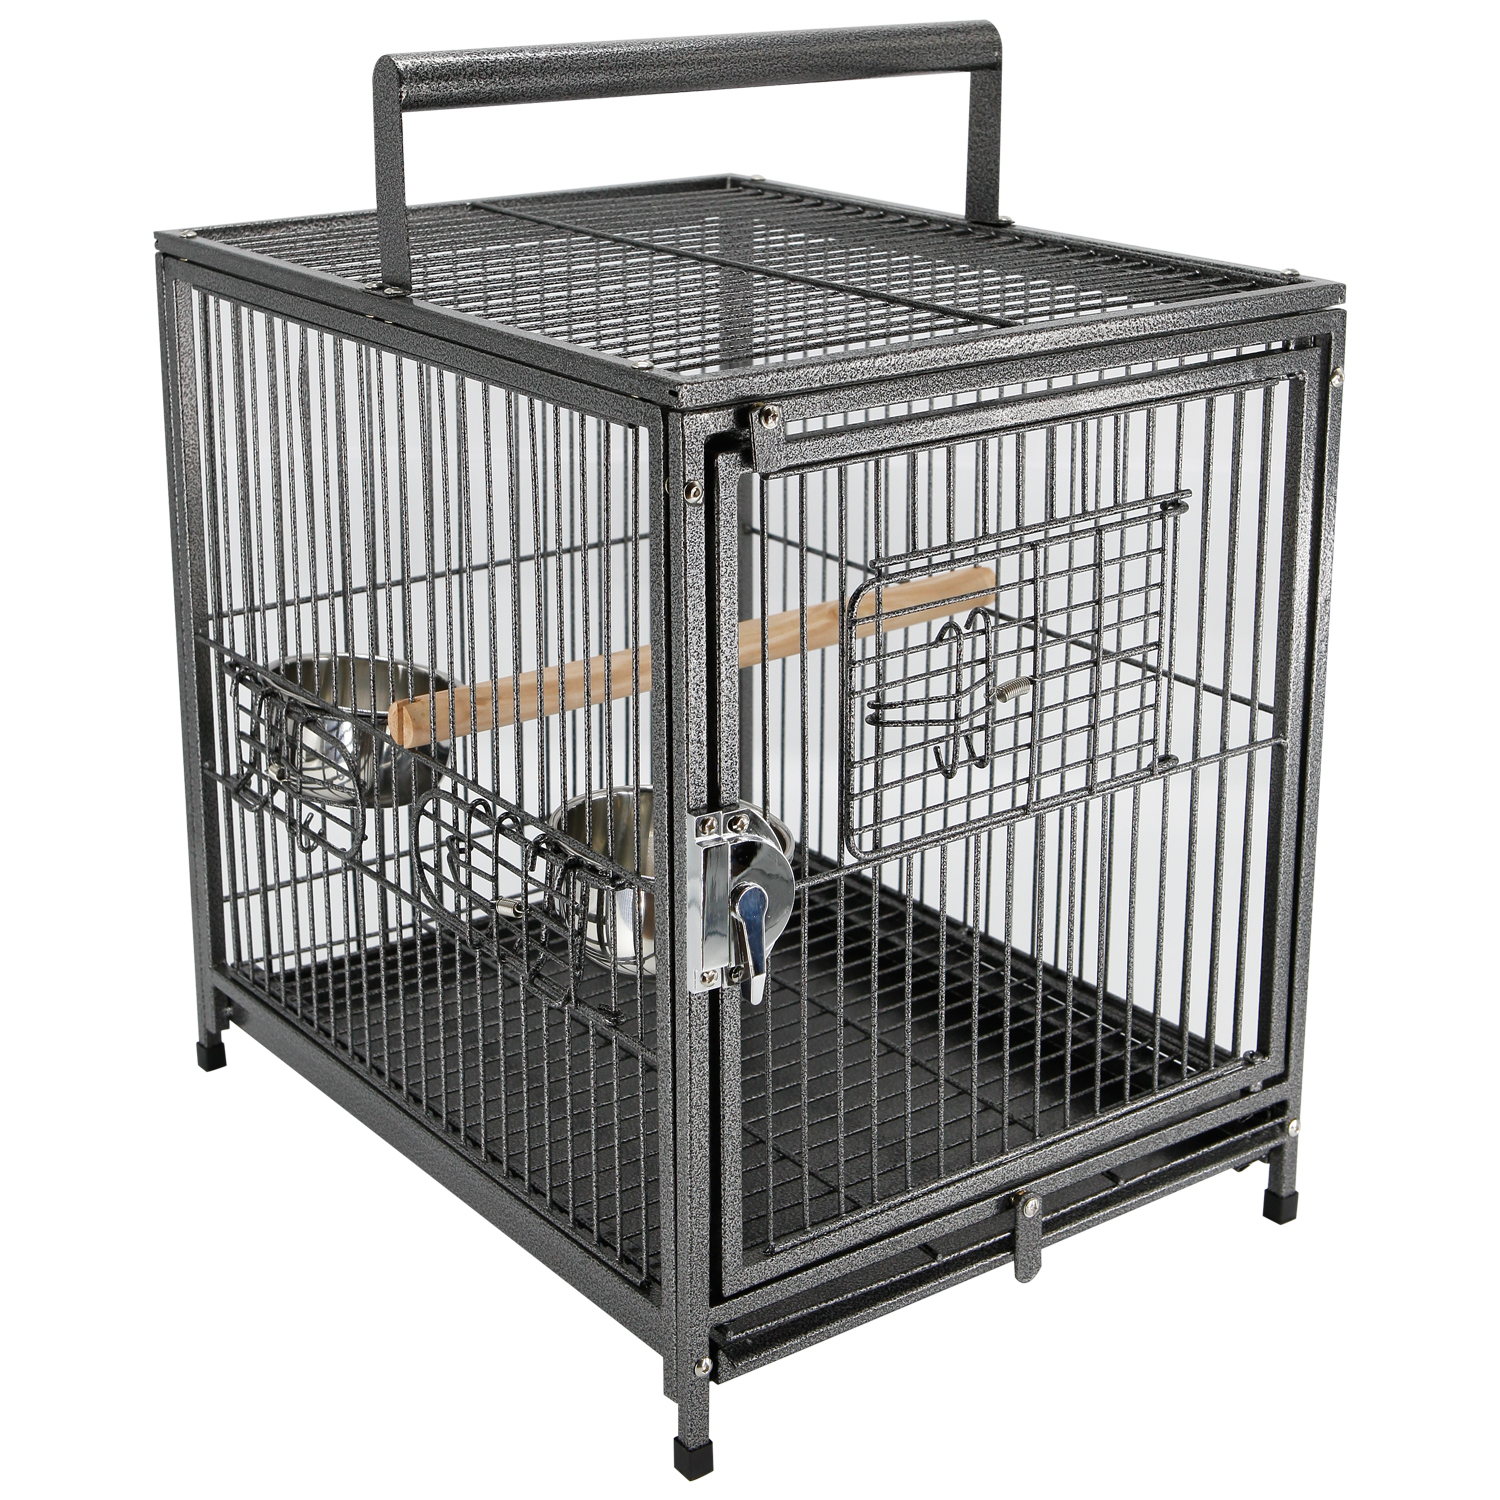 "PawHut 18""x 14"" x 22"" Metal 22"" Portable Heavy Duty Travel Bird Cage with Handle&Perch"